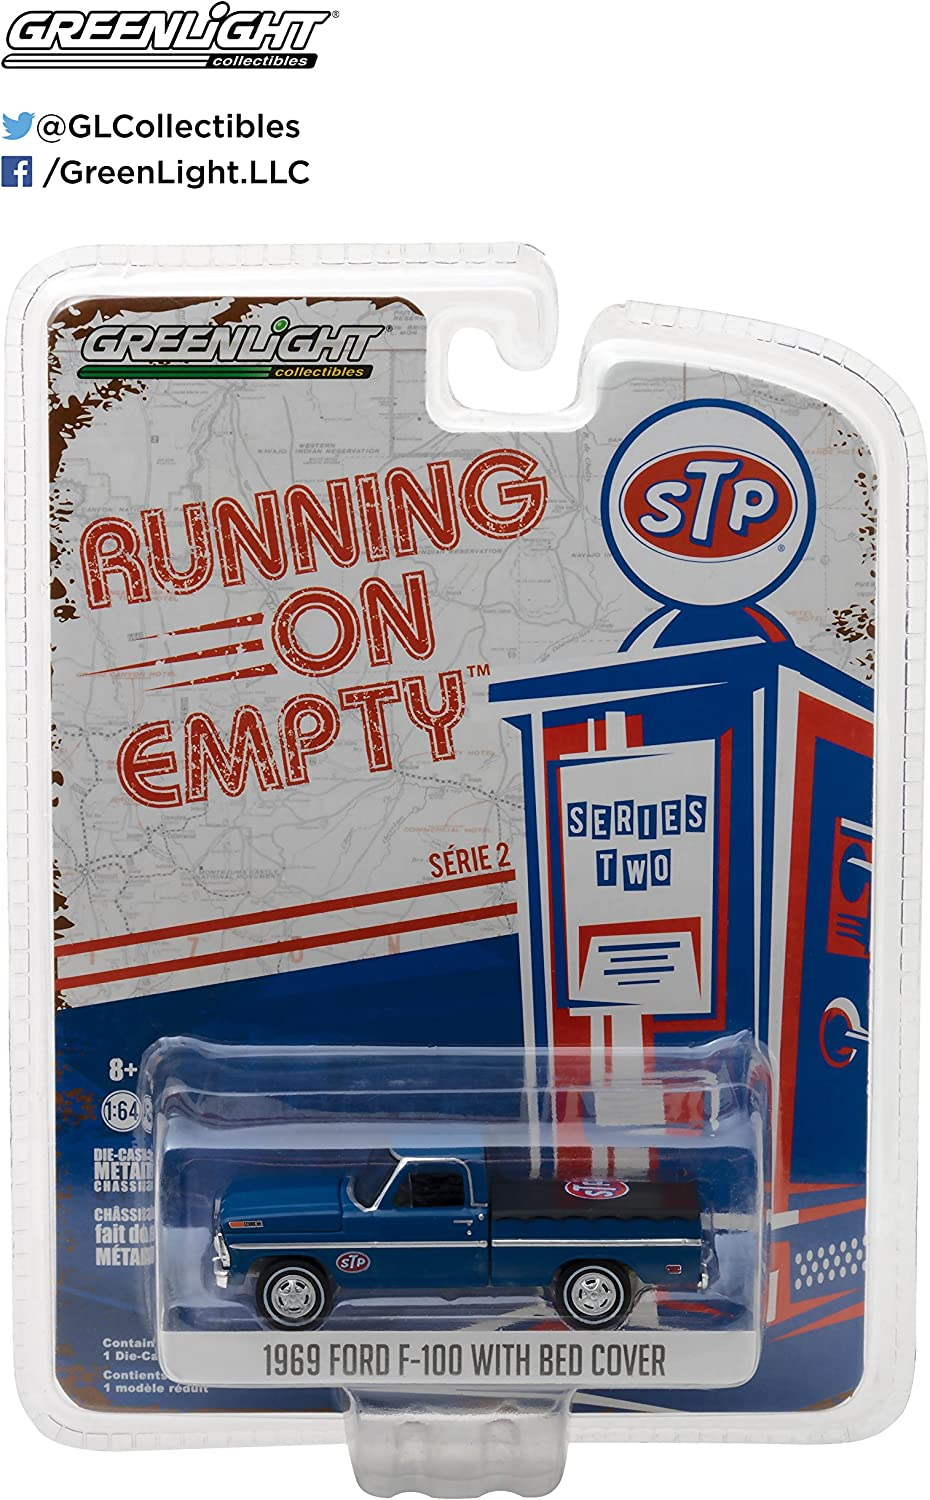 Greenlight 1969 Ford F-100 mit Bed-Cover Running on Empty Serie 1:64